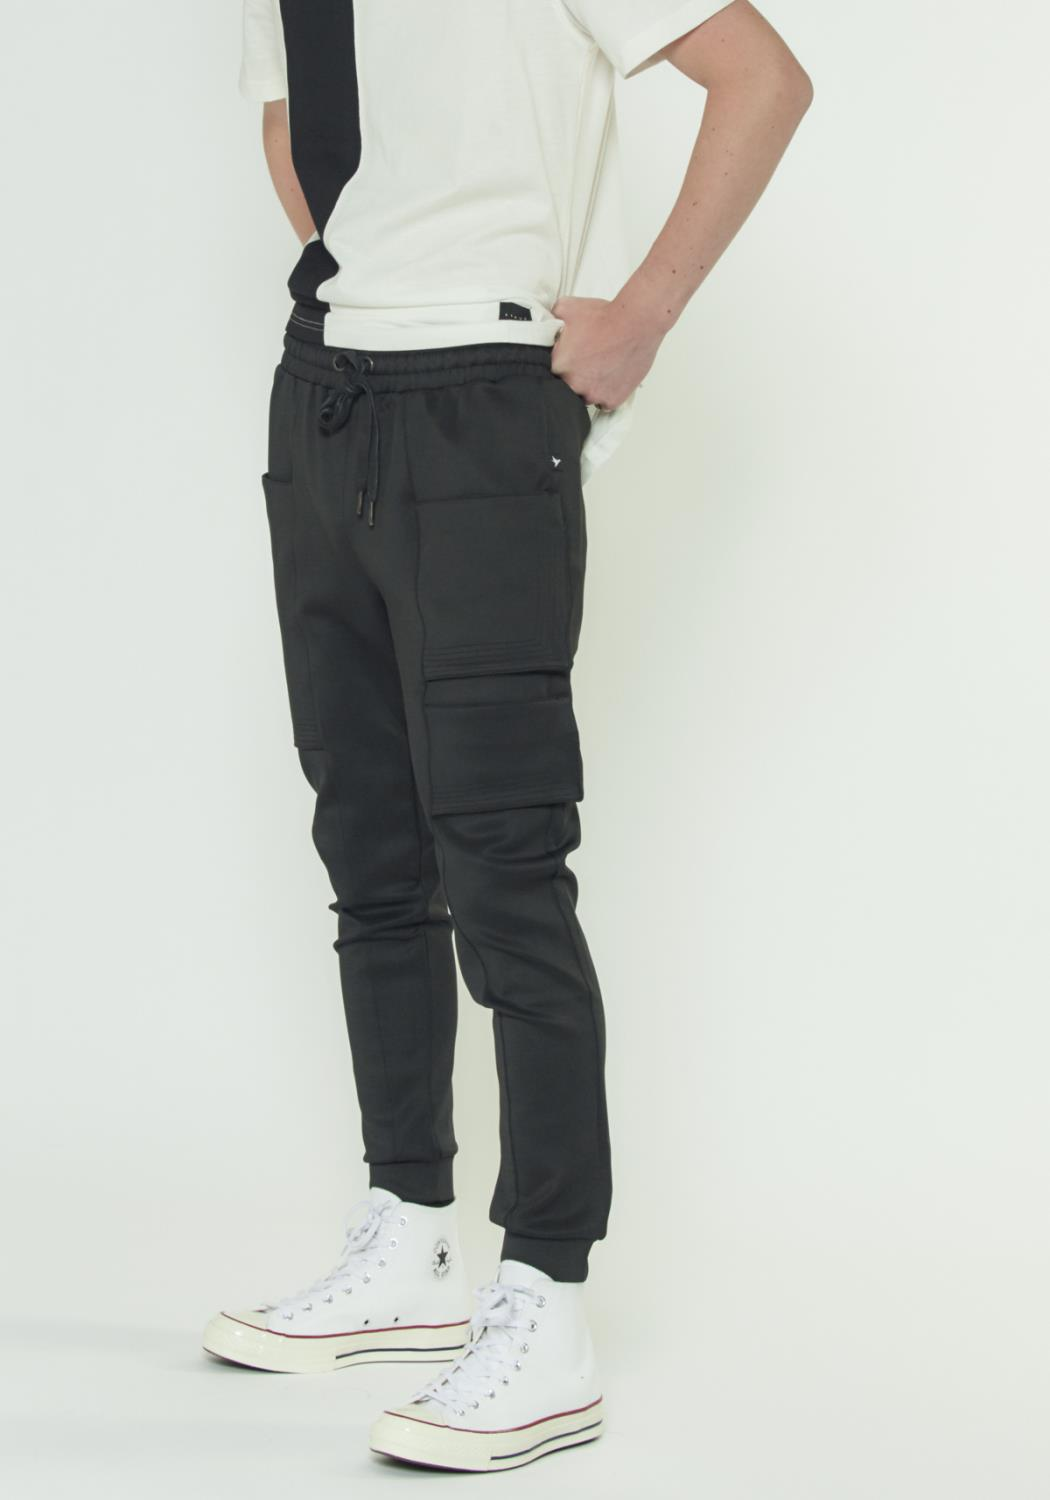 TRACK PANTS WITH MULTIPLE POCKETS